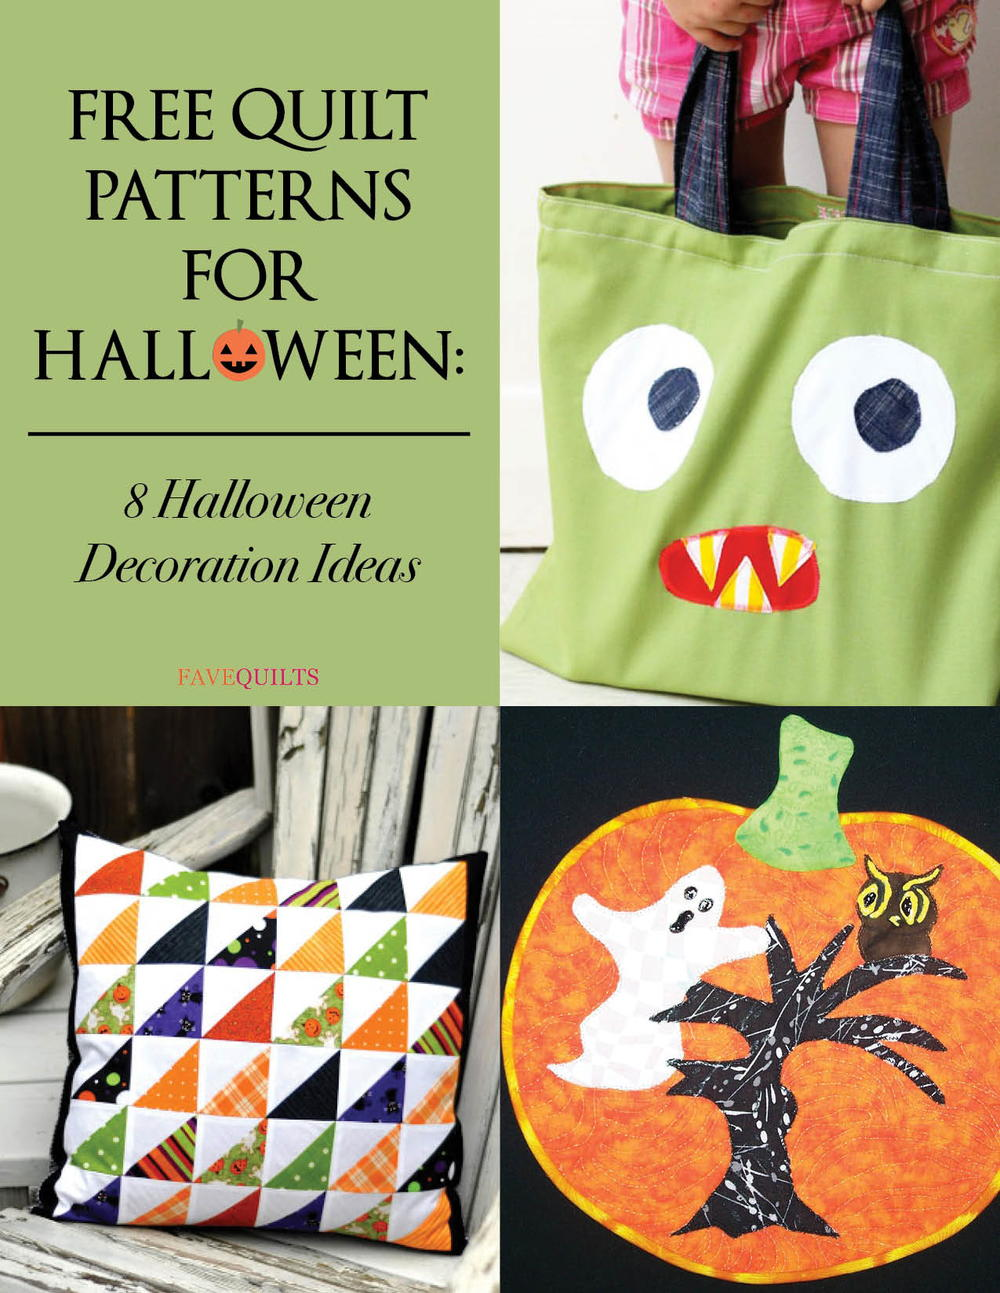 Free quilt patterns for halloween decoration